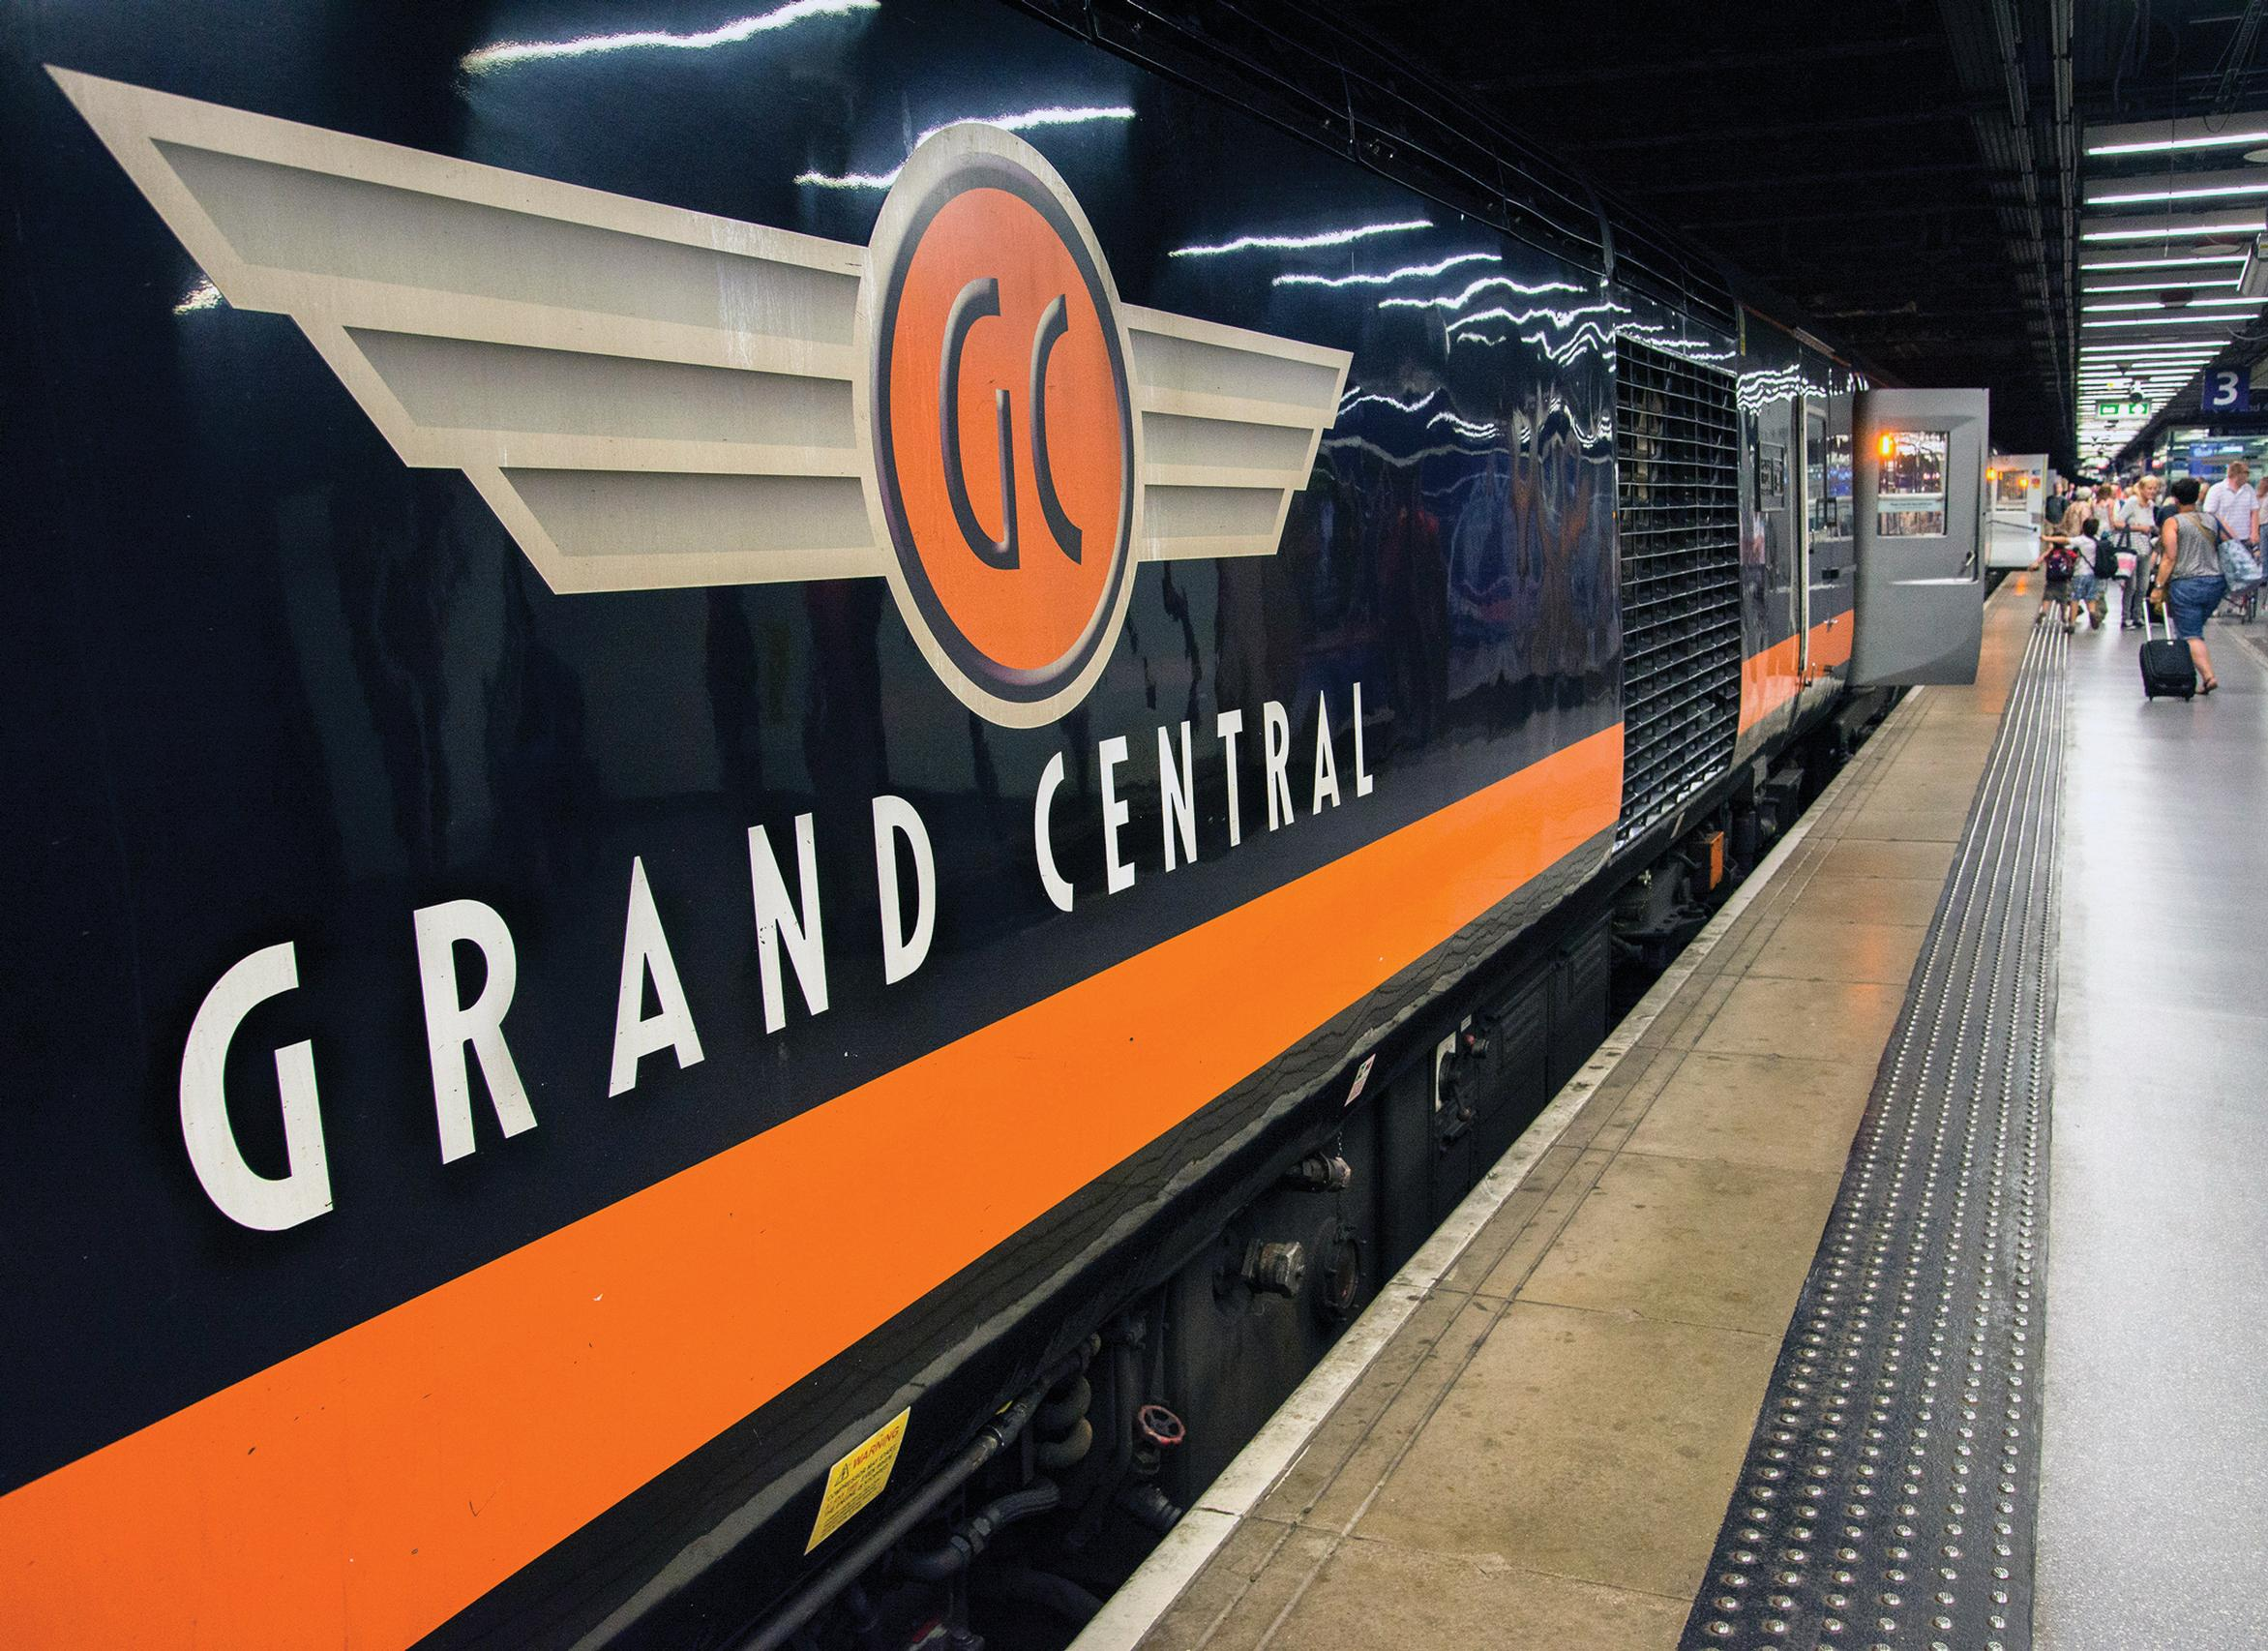 Patronage continues to drop at Arriva-owned Grand Centrall